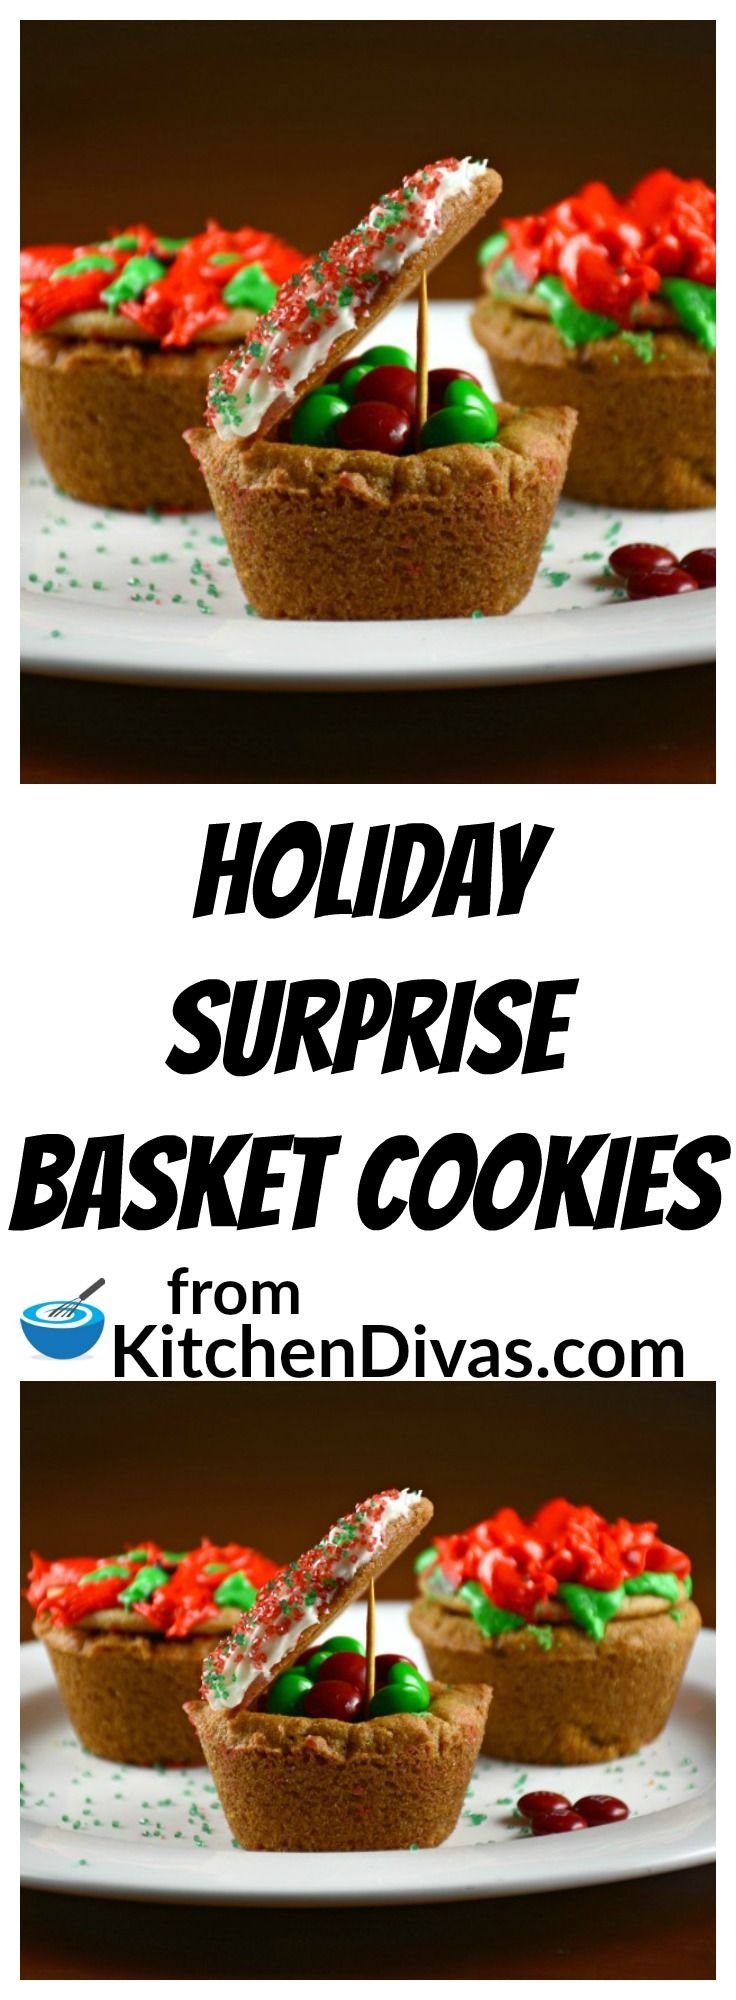 These Holiday Surprise Basket Cookies are so versatile! They can be filled with anything and decorated in so many ways. Every year we hide something different inside for Christmas morning. The kids decorated them, they just didn't know what was going to be put inside them! Most families leave cookies for Santa and we left him one of these! These cookies are delicious.